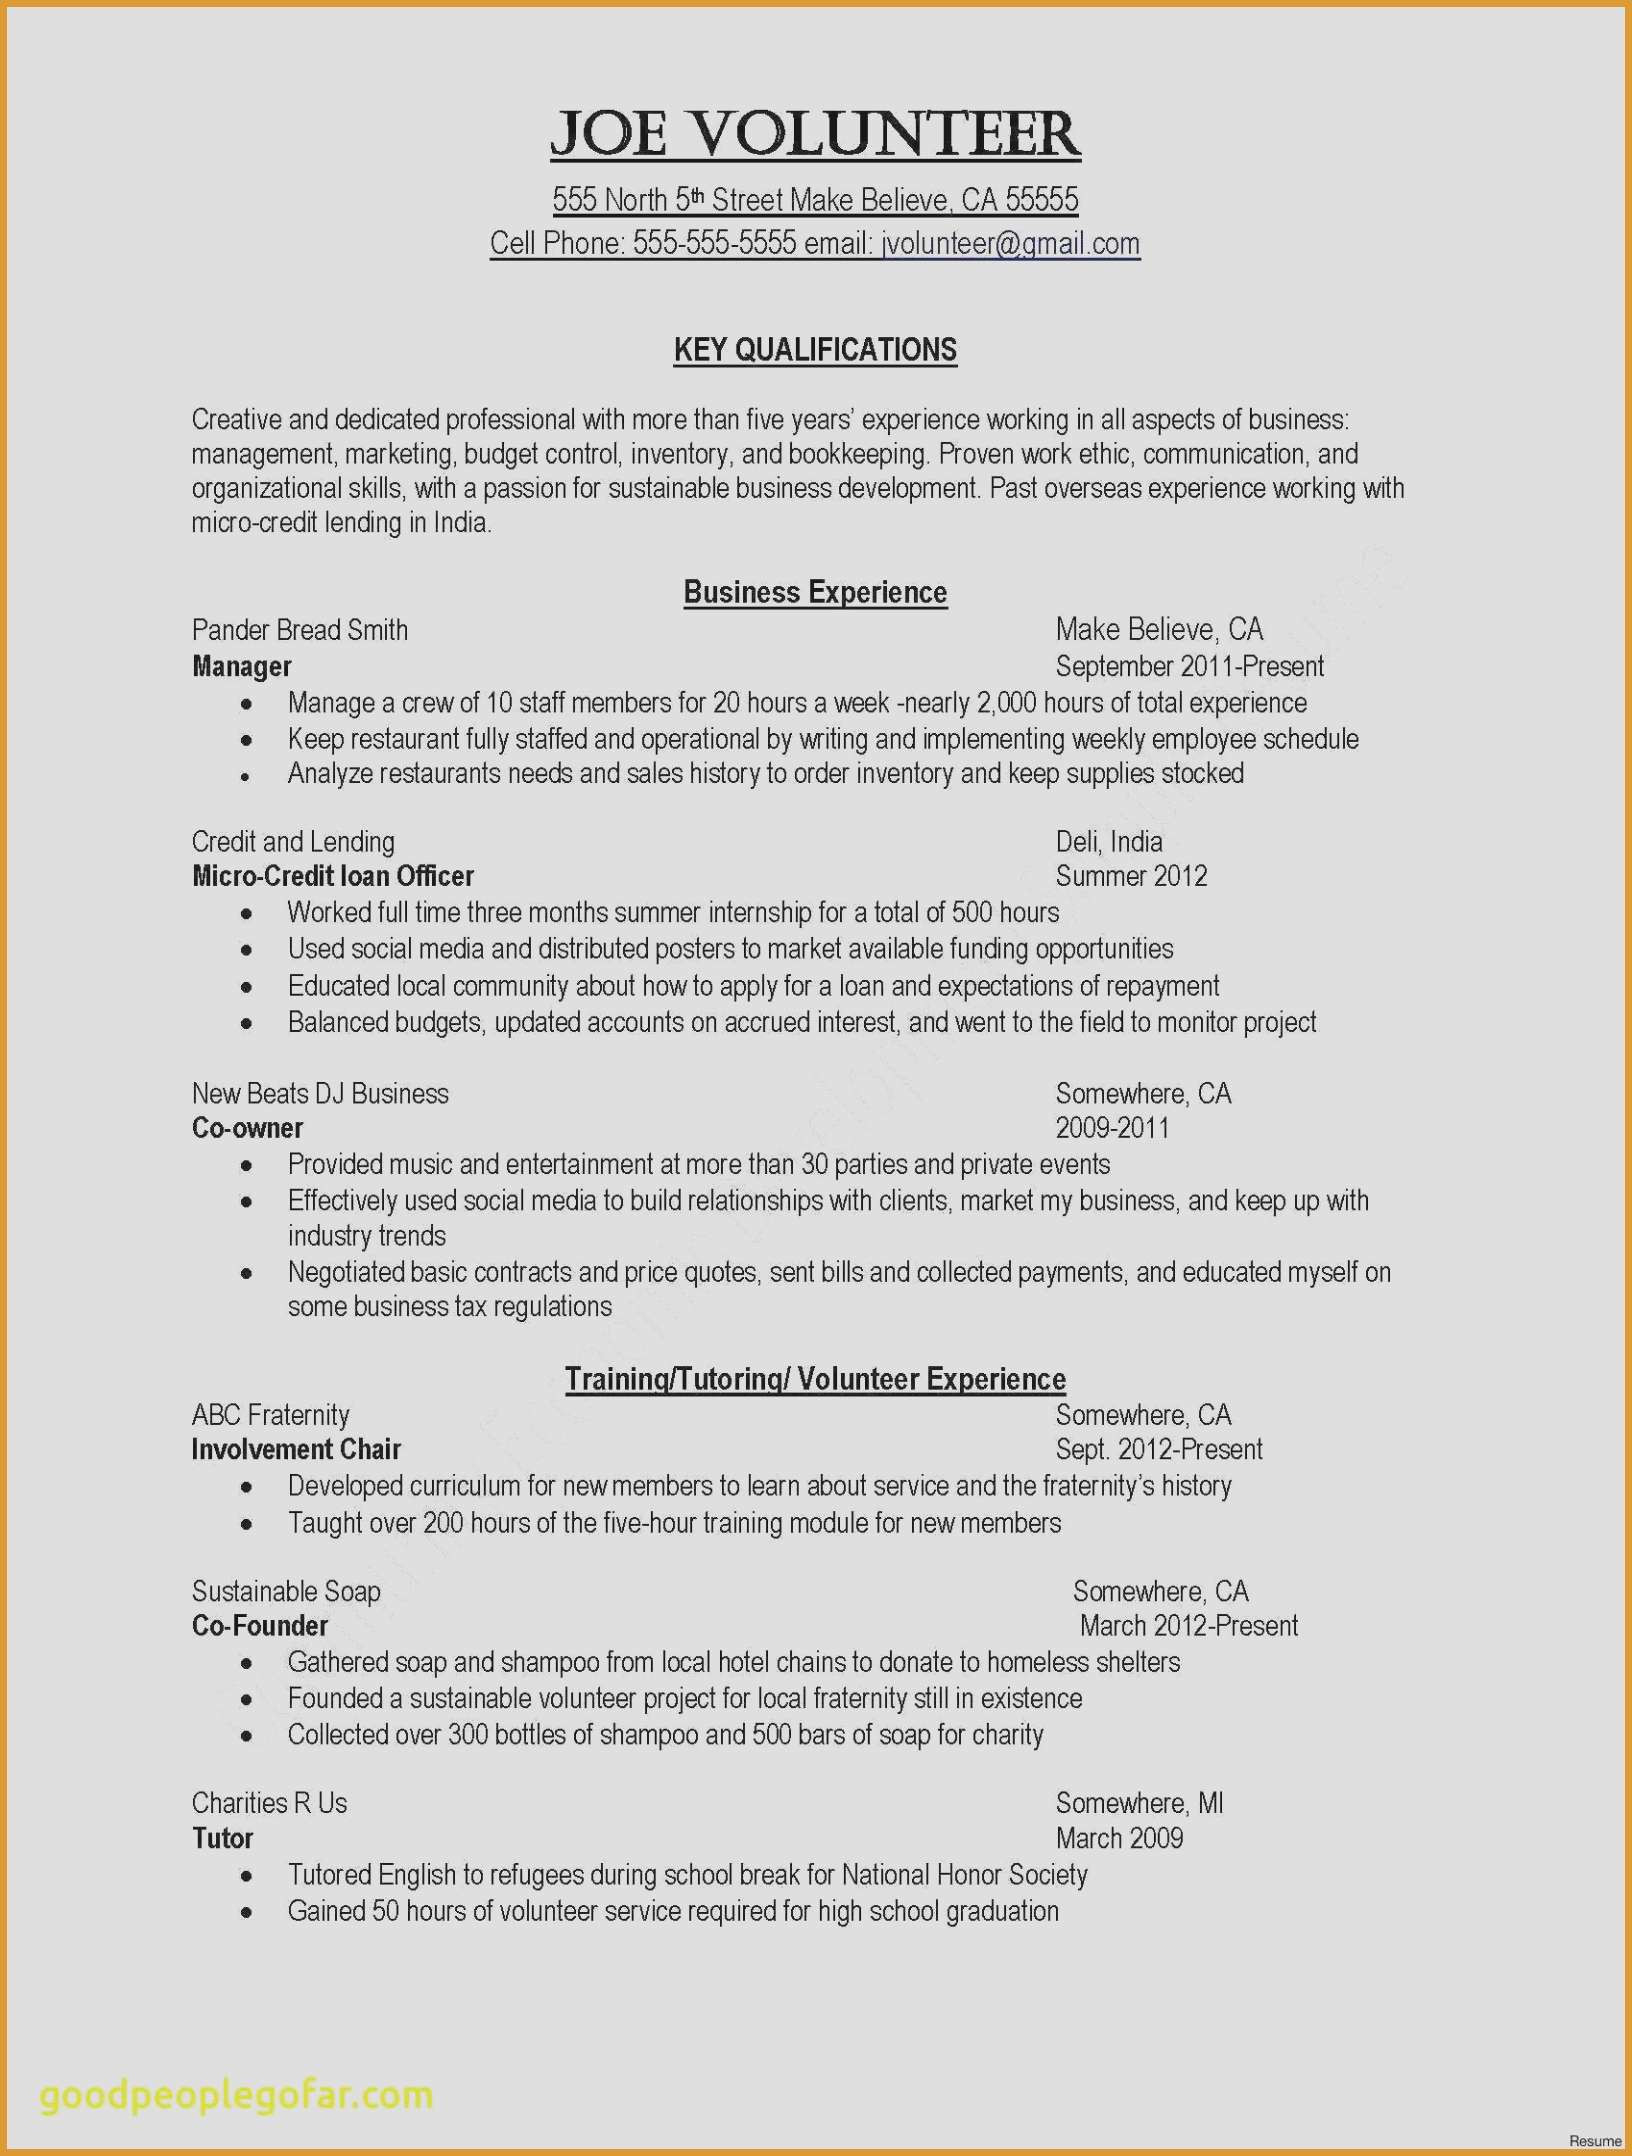 Resume Writing Workshop Flyer - Marvelous Resume Writing Workshop Flyer